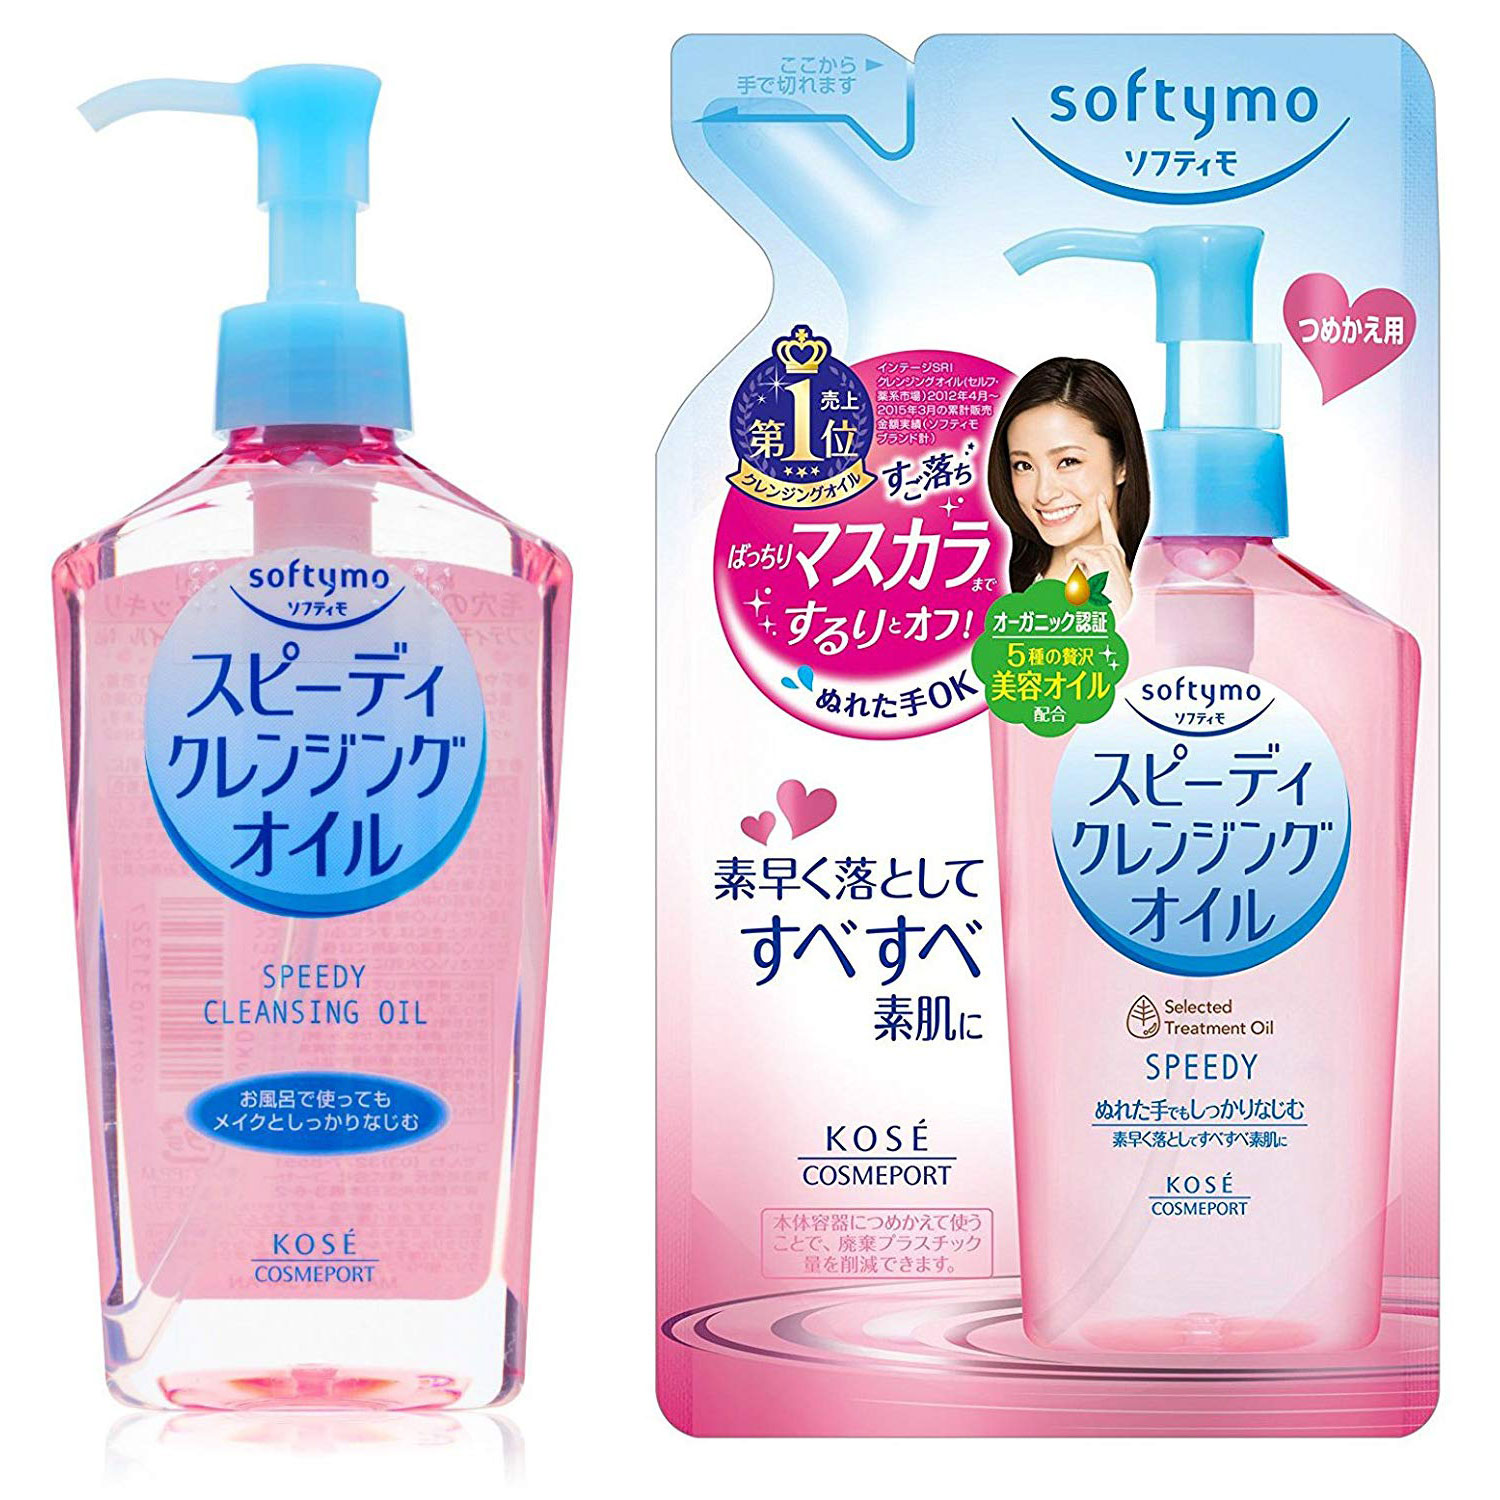 Kose Softymo Speedy Cleansing Oil